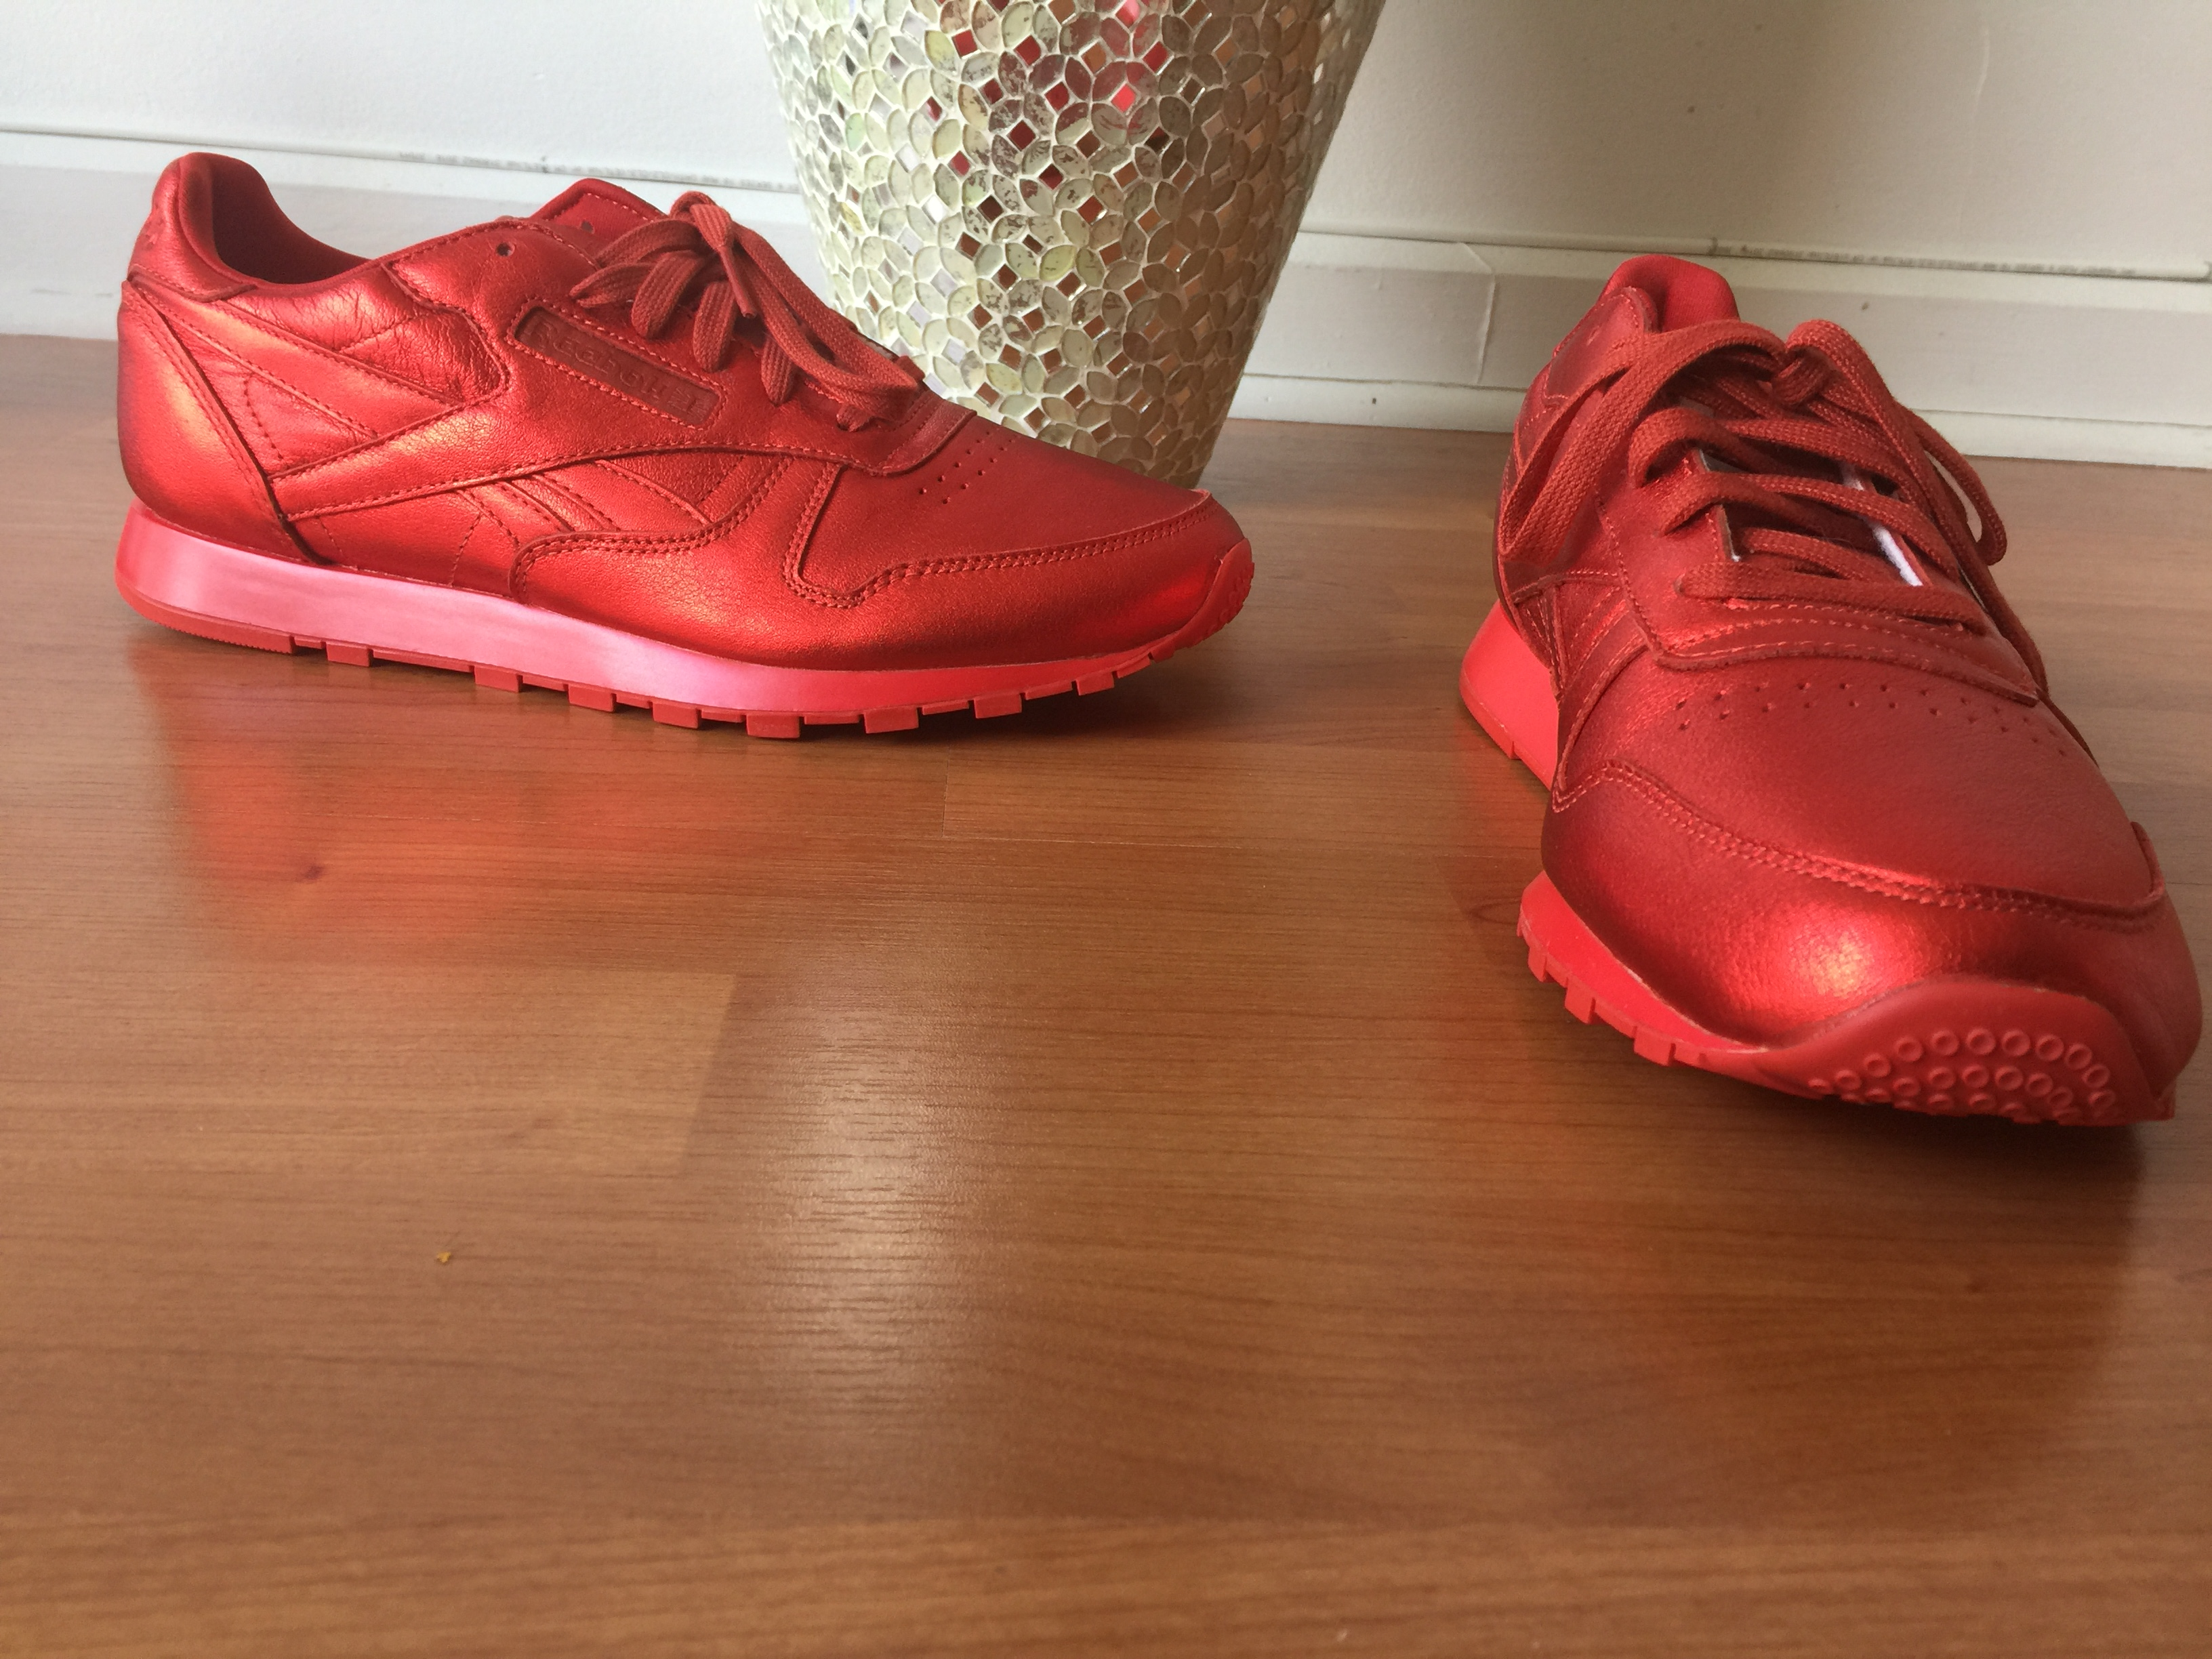 reebok x face. reebok x face stockholm metallic red sneakers